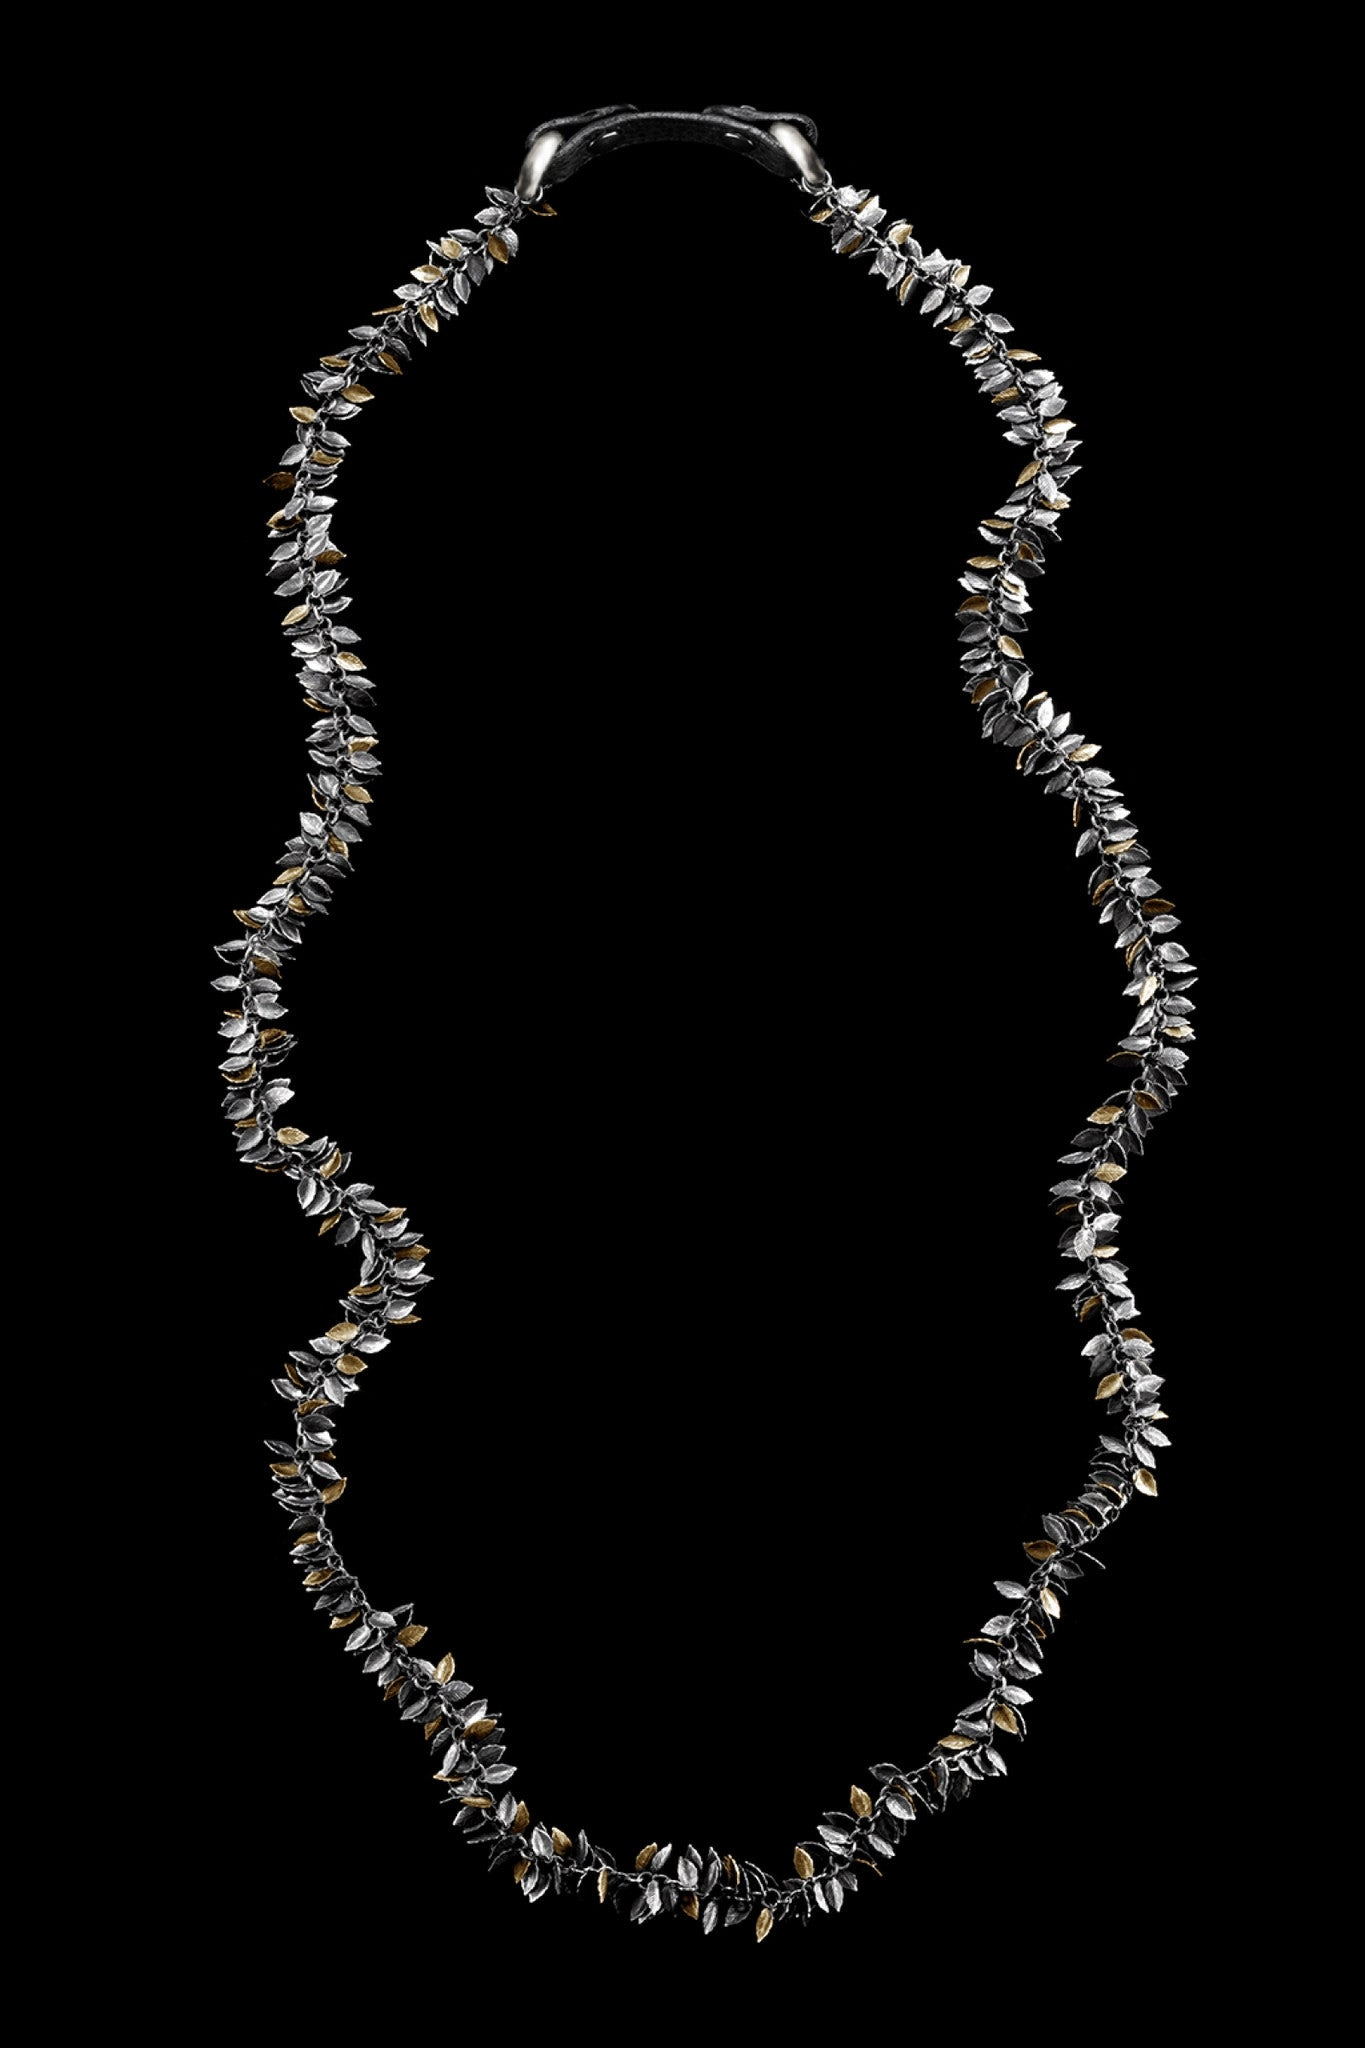 Ugo Cacciatori, Gold, Jewelry, 9kt Gold + Sterling Silver, Necklace, Gold + SIlver